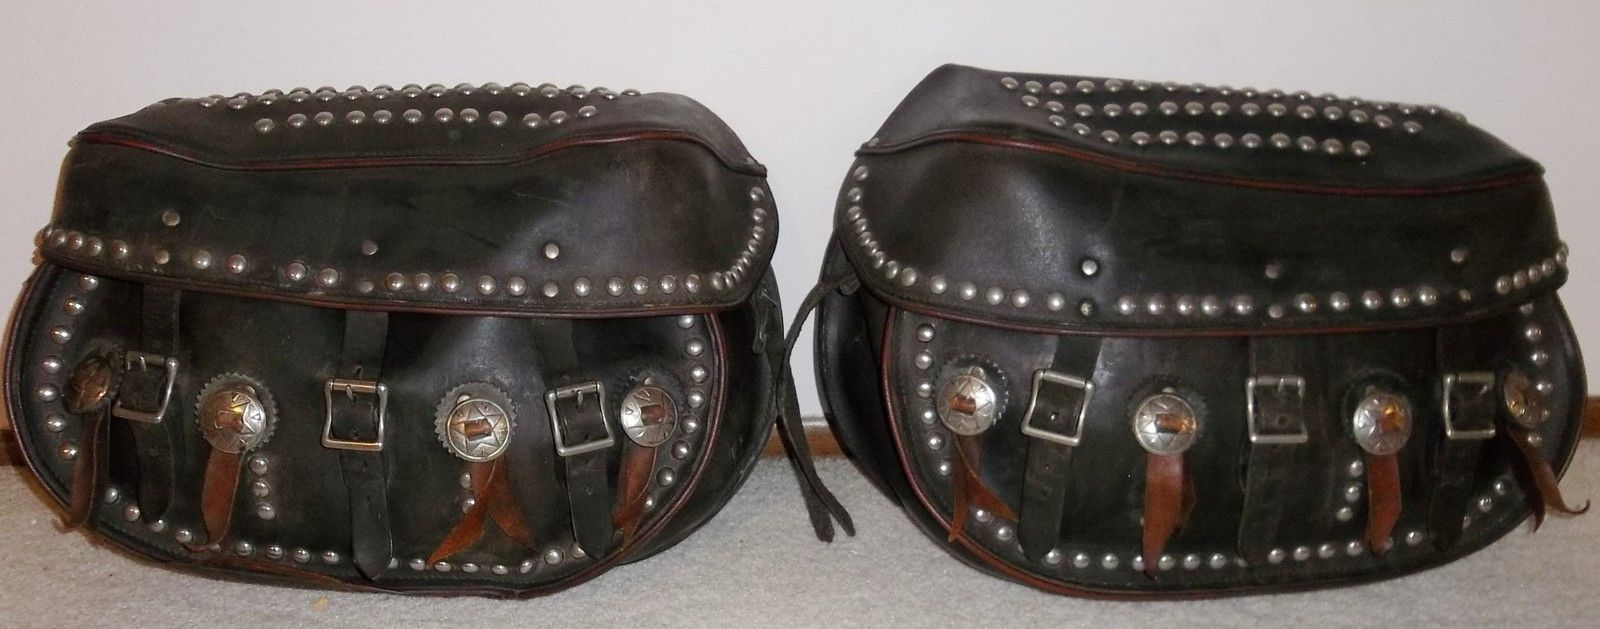 Harley Panhead Knucklehead Leather Saddlebags Vint